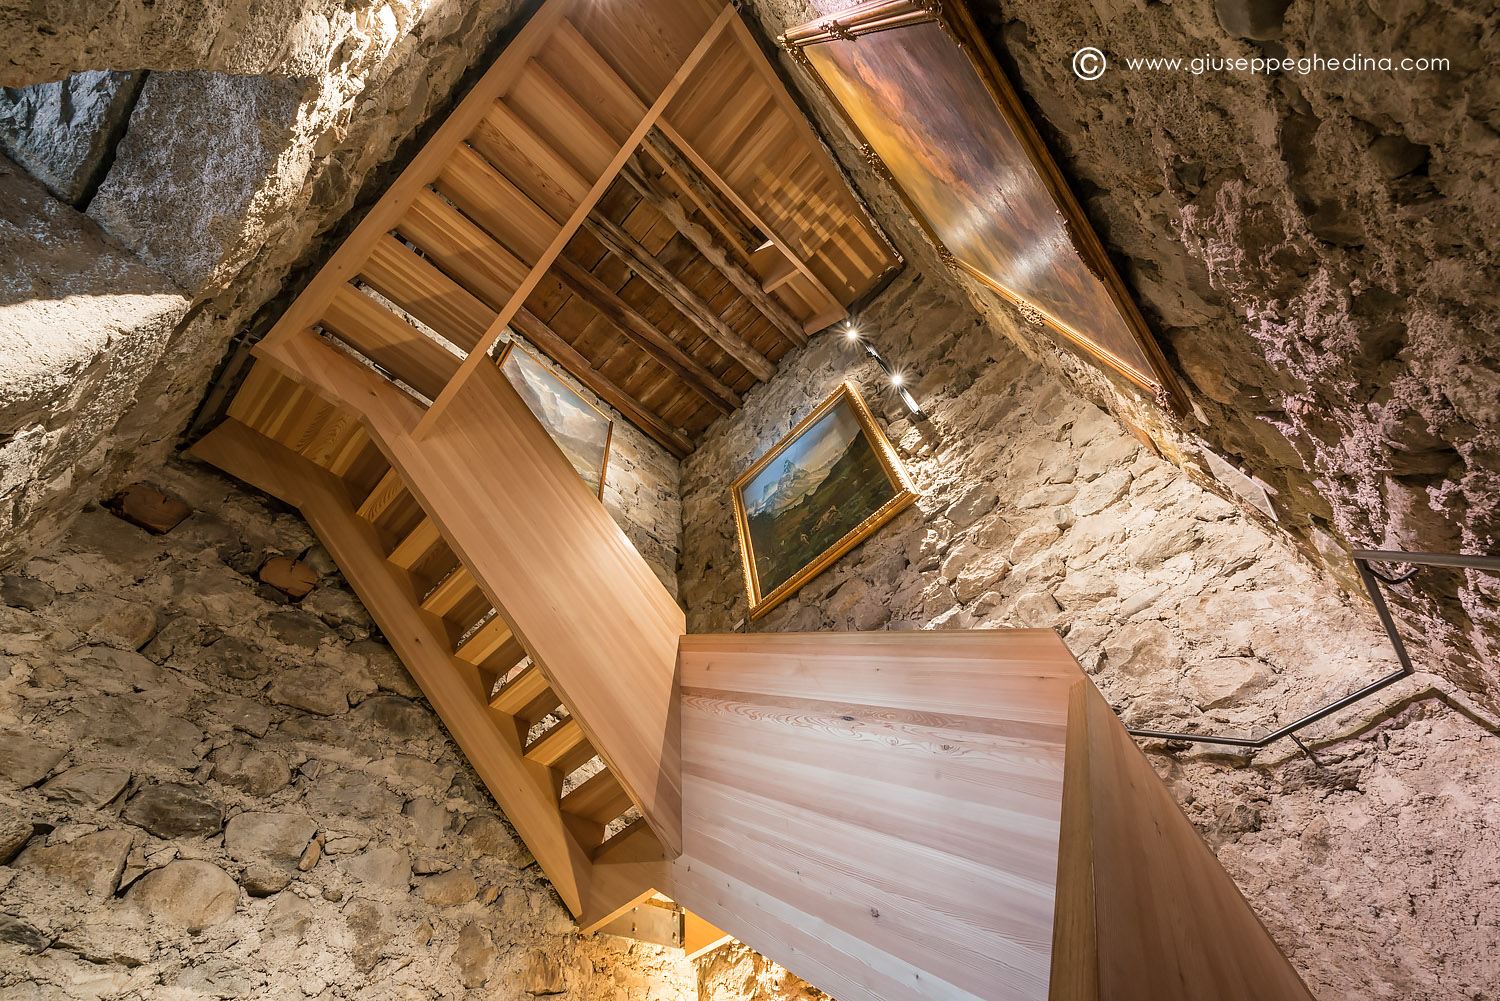 20140402_042_photo_giuseppe_ghedina_messner_mountiam_museum_ripa.jpg